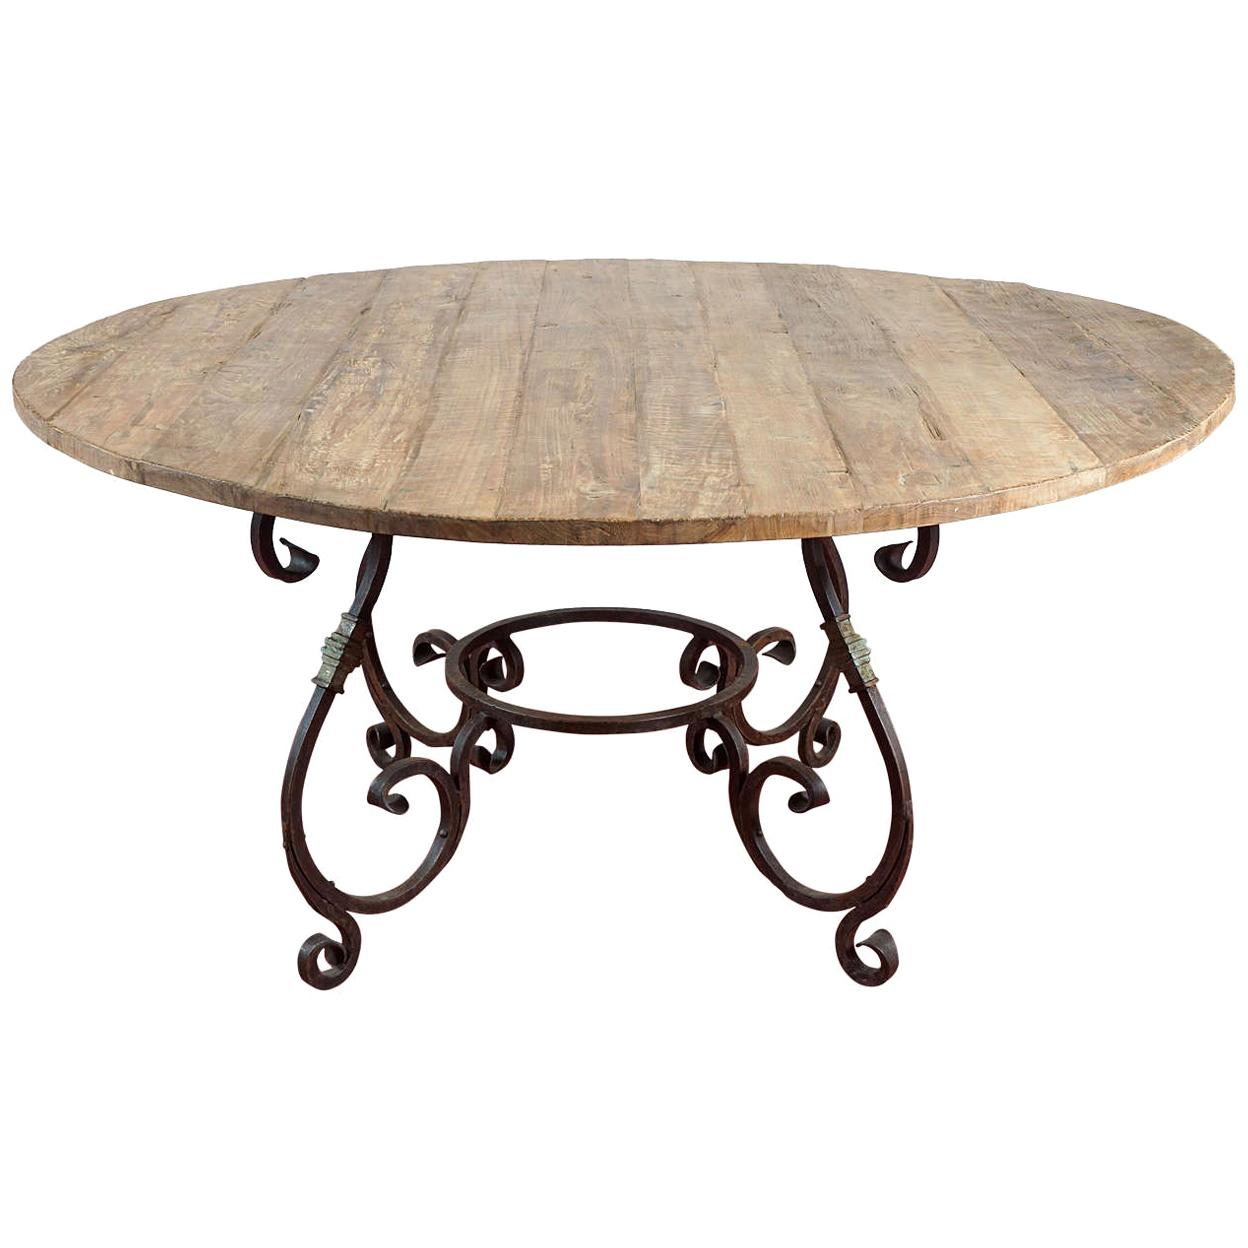 baroque tables for master accent table large cloth full marble coffee small round antique with drawer black wood side painted raton furniture sectional acrylic and chairs home